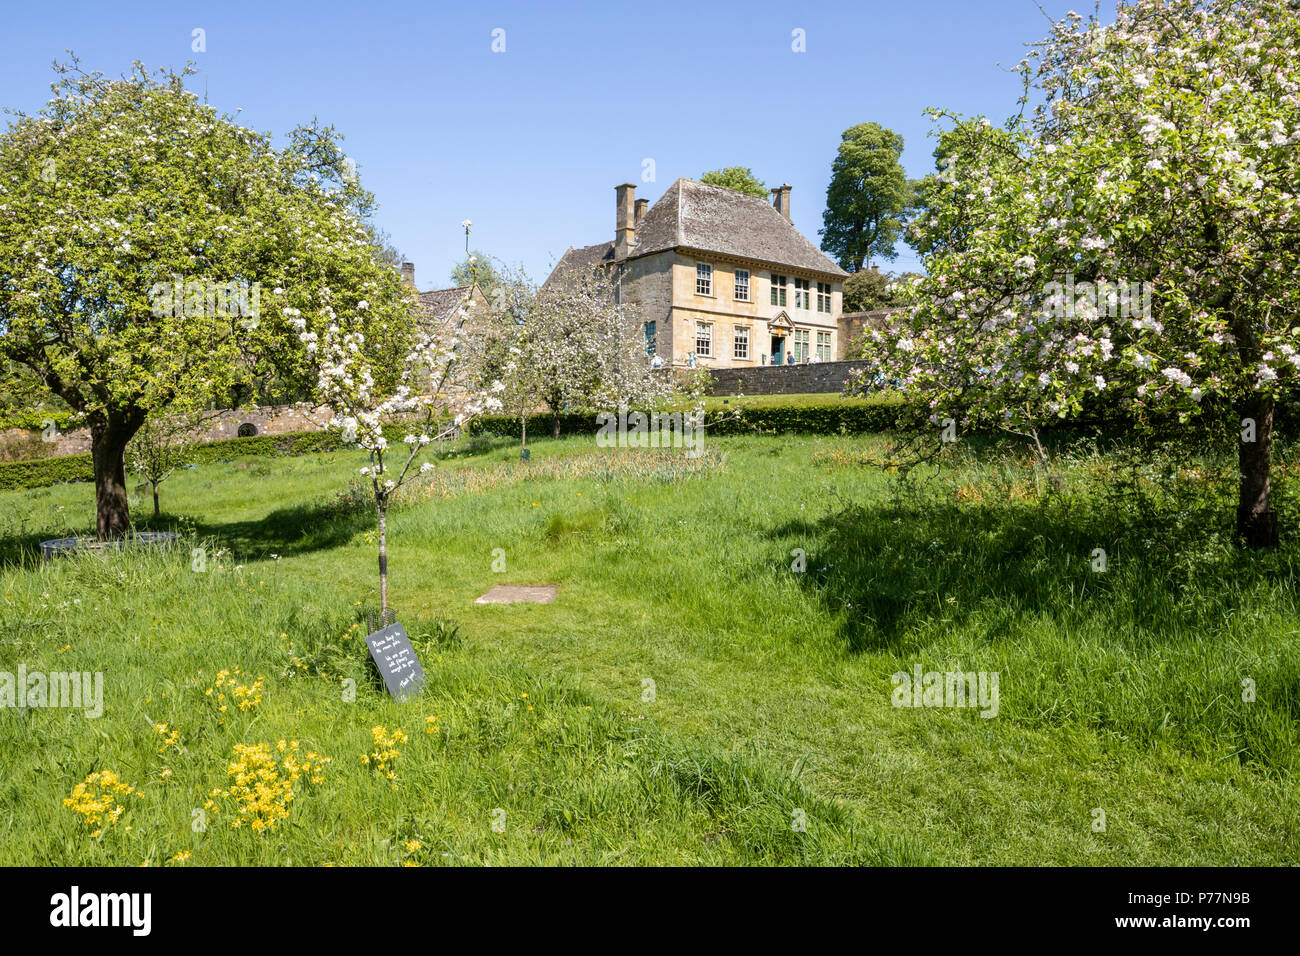 Snowshill Manor in the Cotswold village of Snowshill, Gloucestershire UK Stock Photo